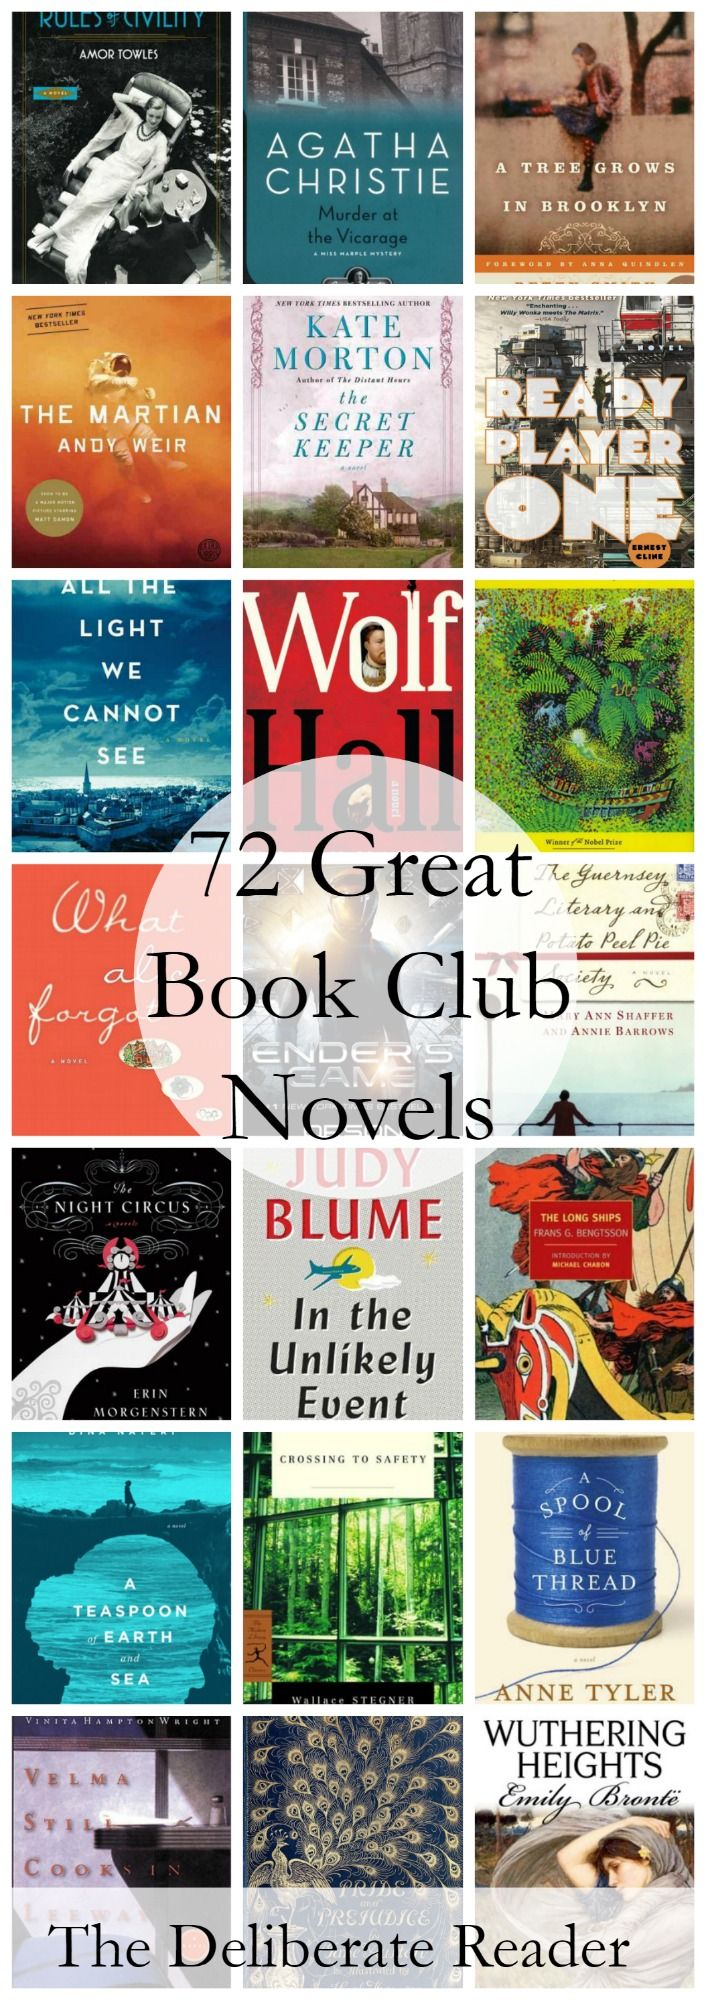 72 Great Book Club Novels